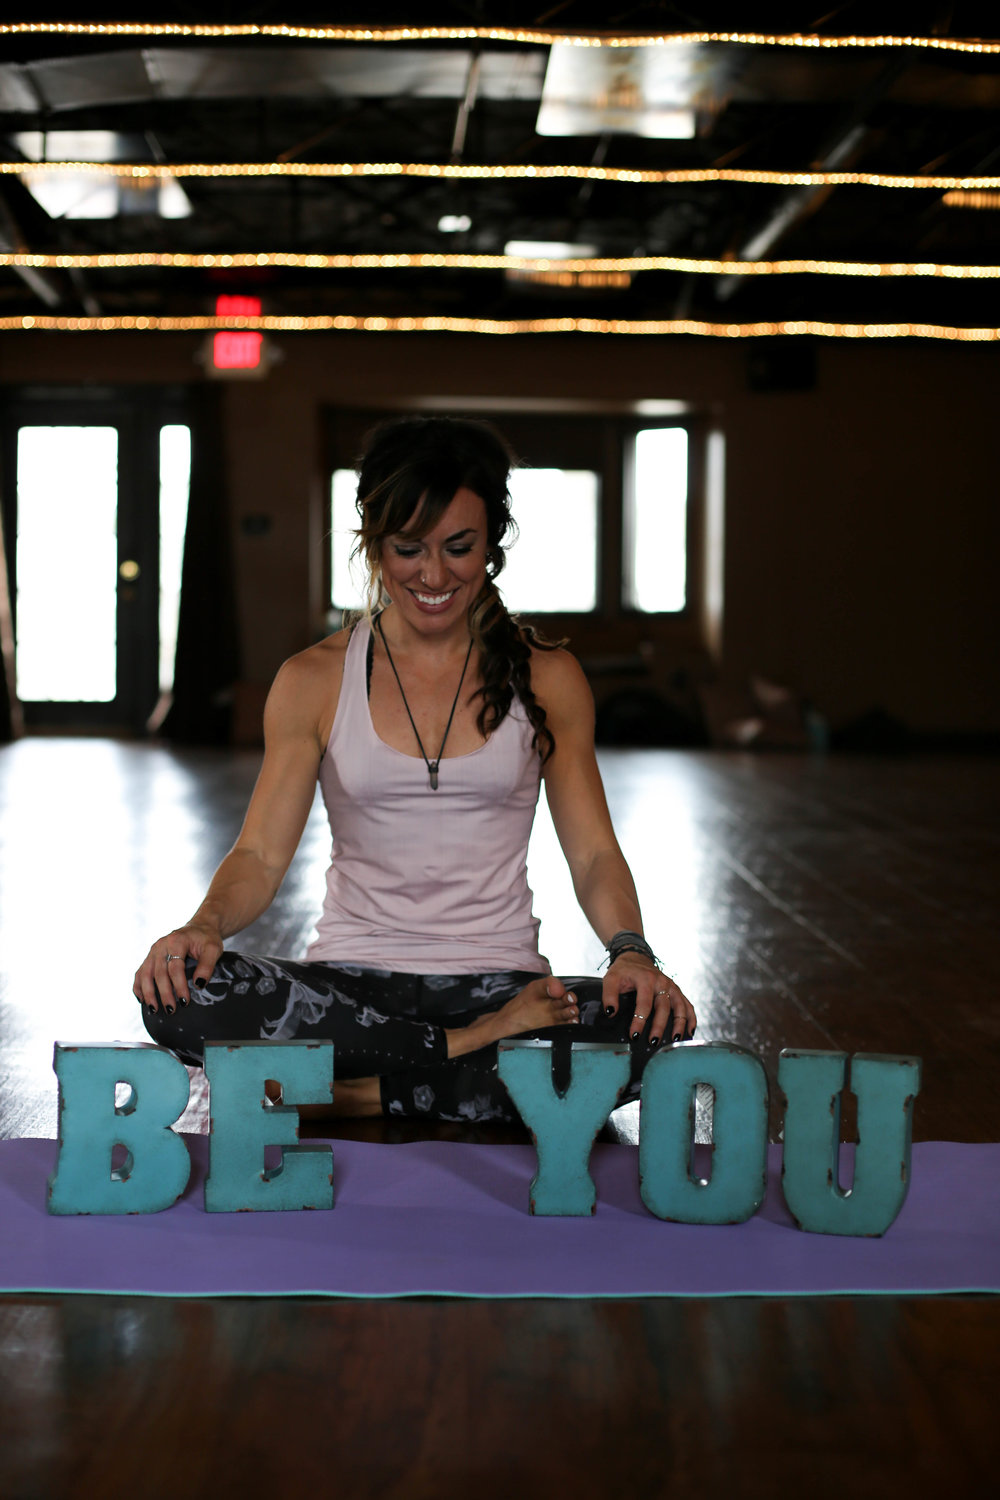 Be You Campaign